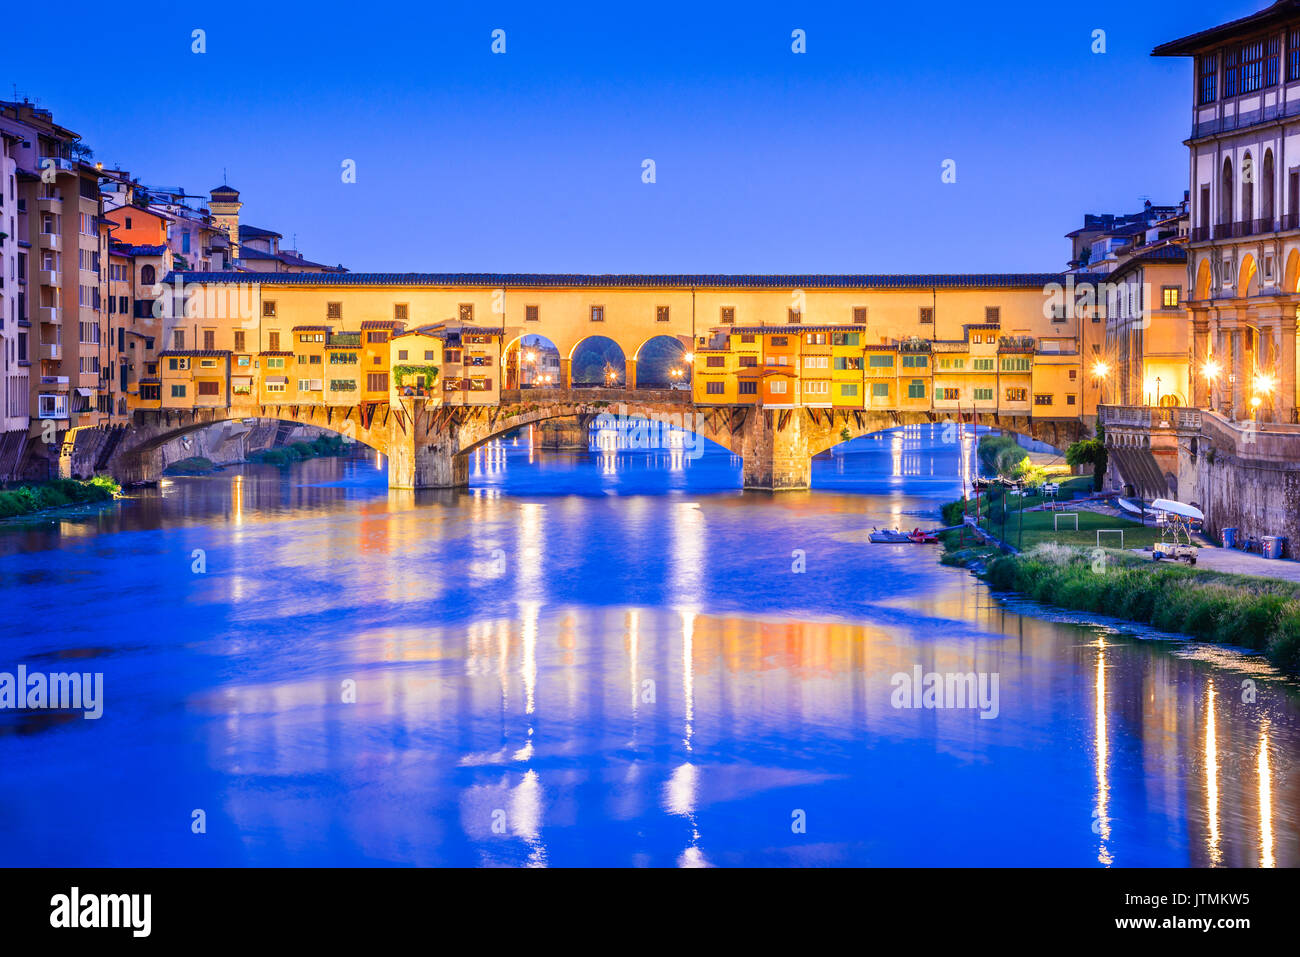 Florence, Tuscany - Ponte Vecchio,  medieval stone arch bridge over the Arno River, Renaissance architecture in Italy. - Stock Image